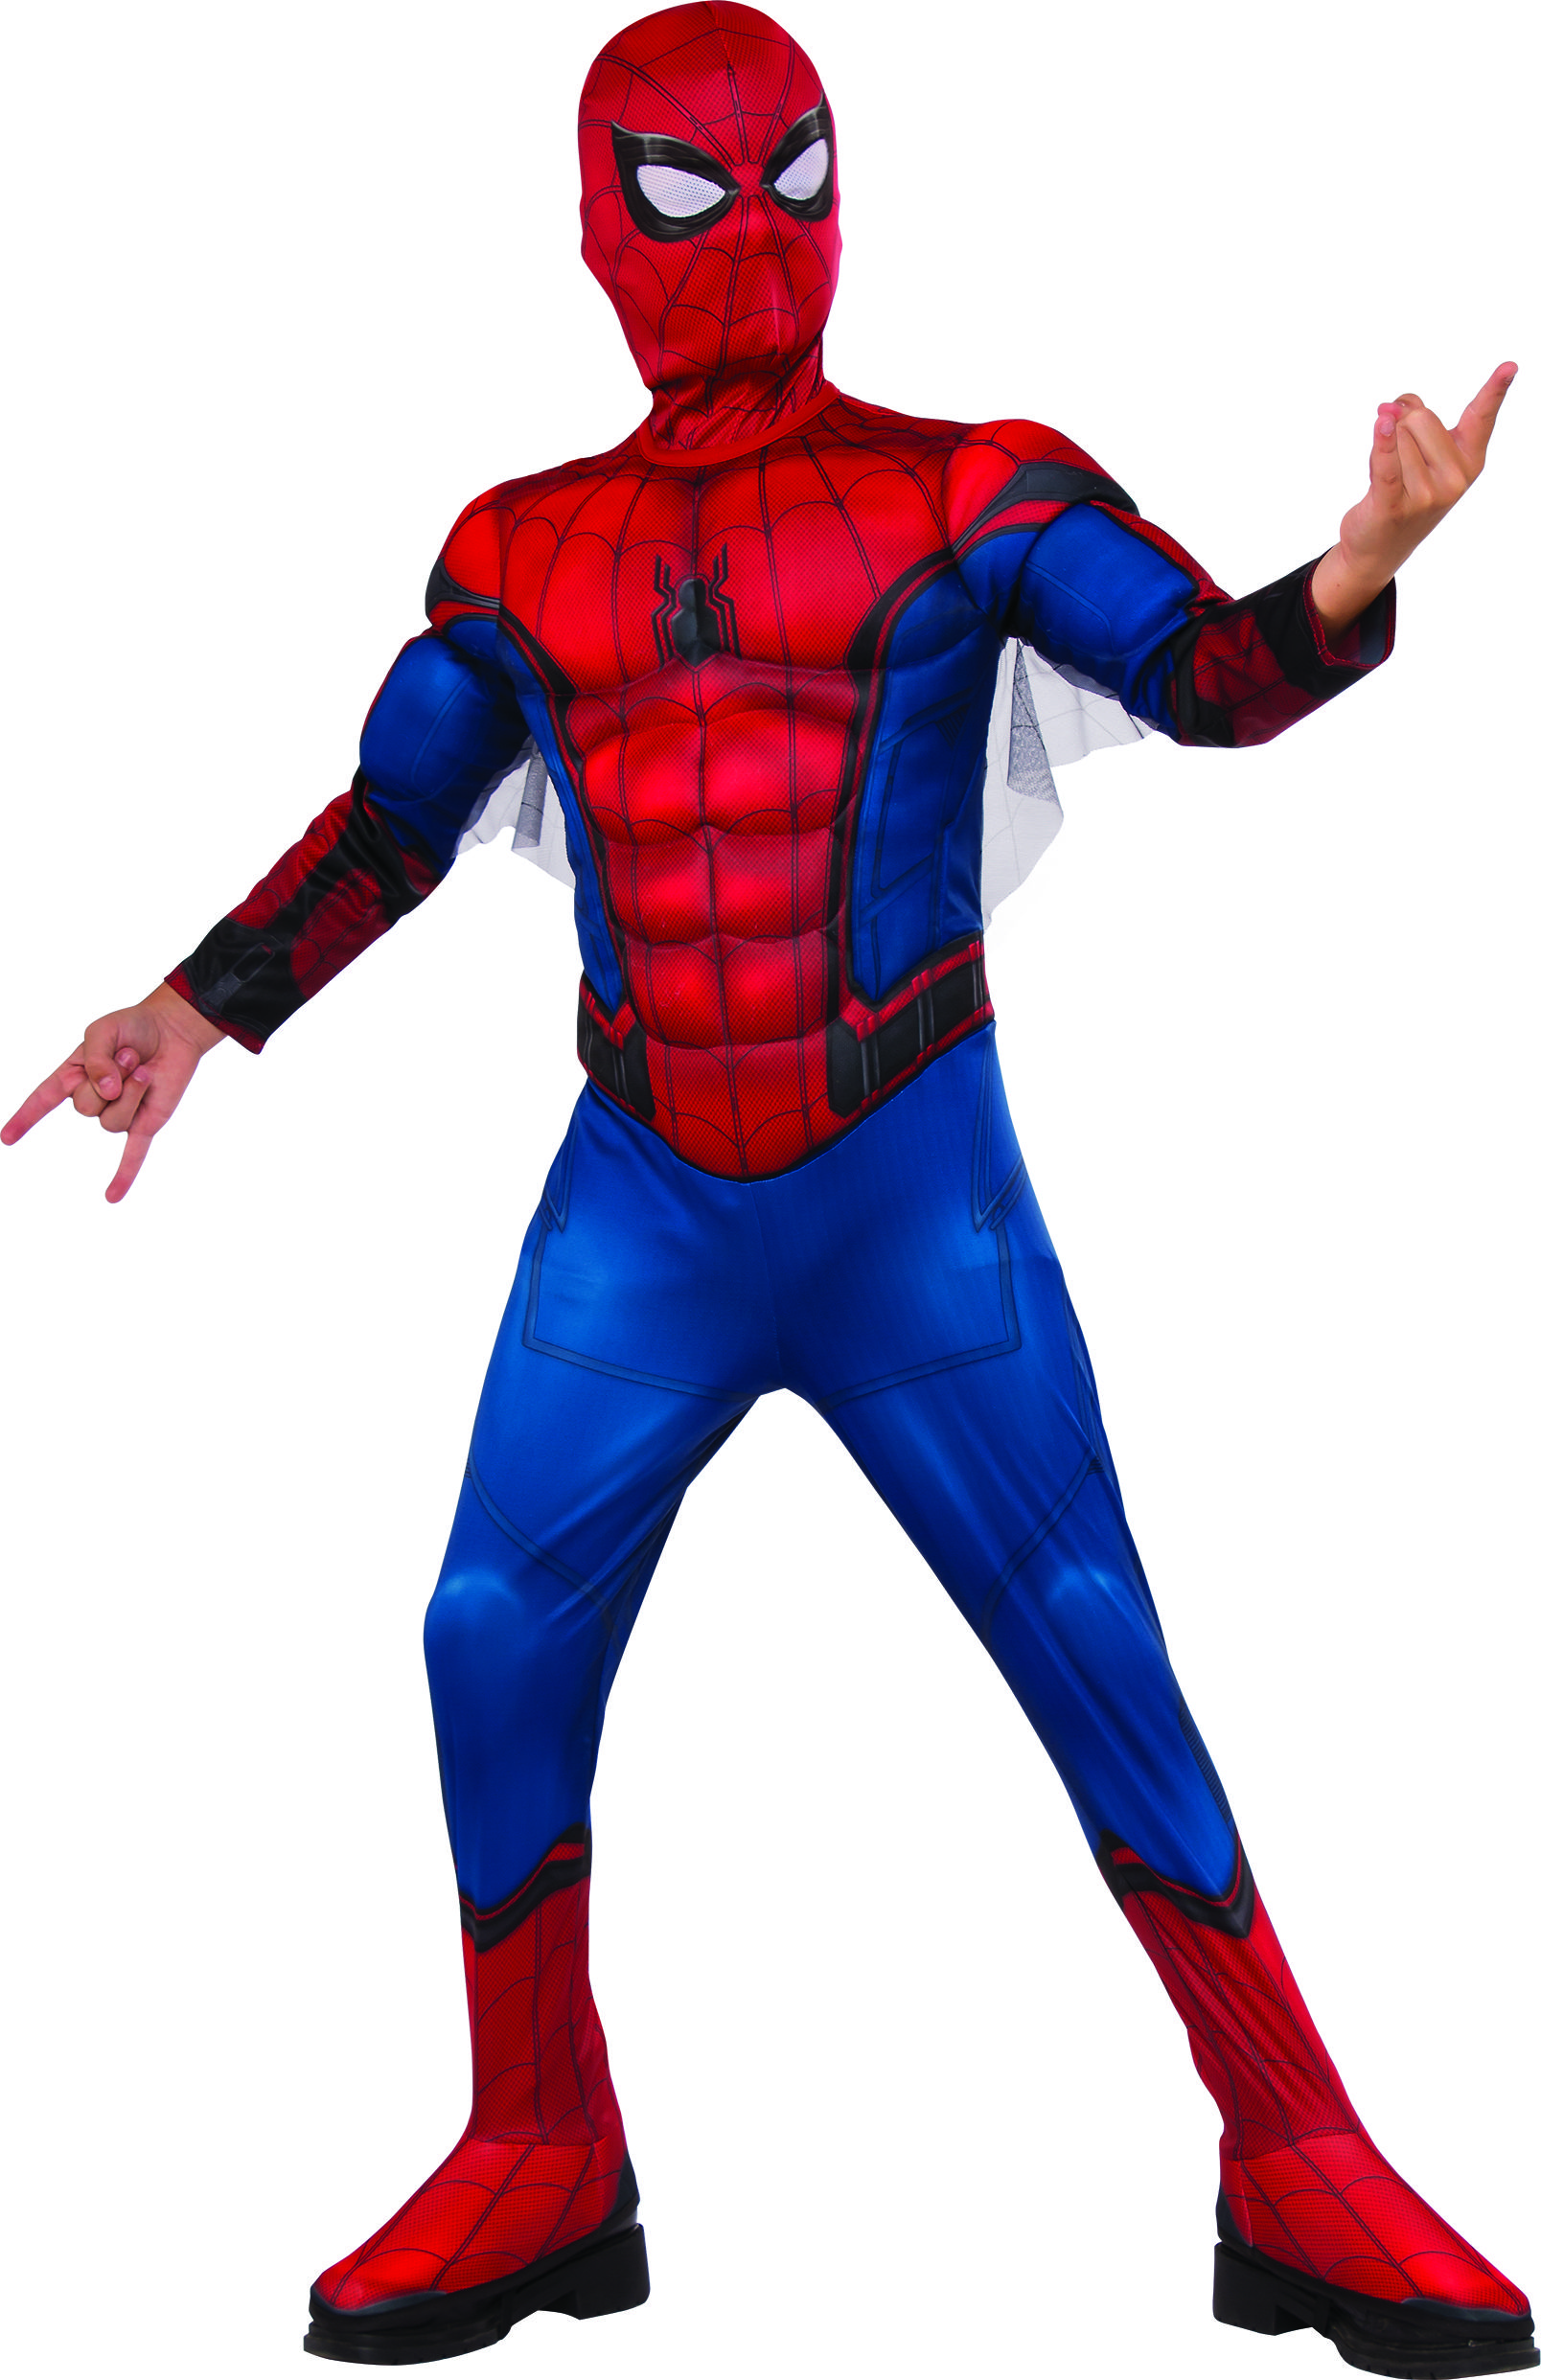 Spider-man homecoming movie costume for boys   COSTUMES   Pinterest bc615743ce06